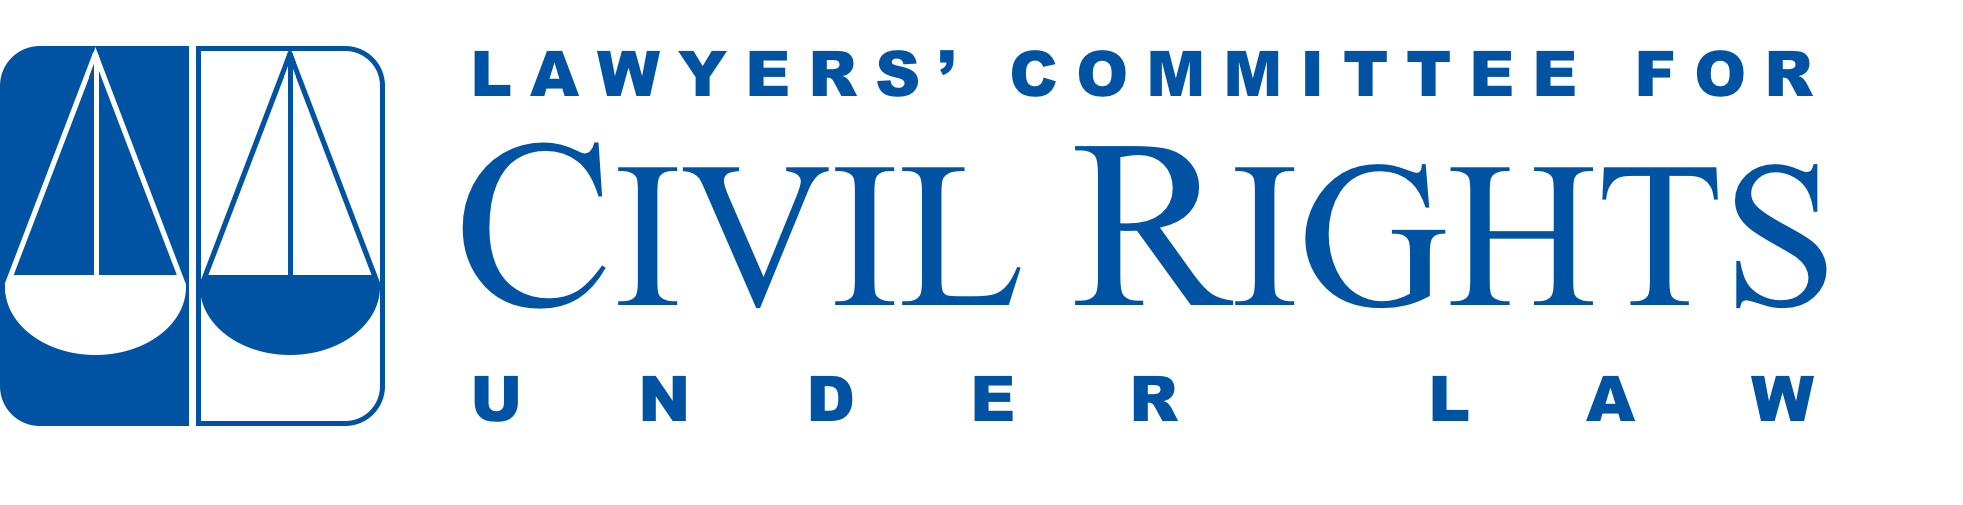 lawyers-cmte-logo